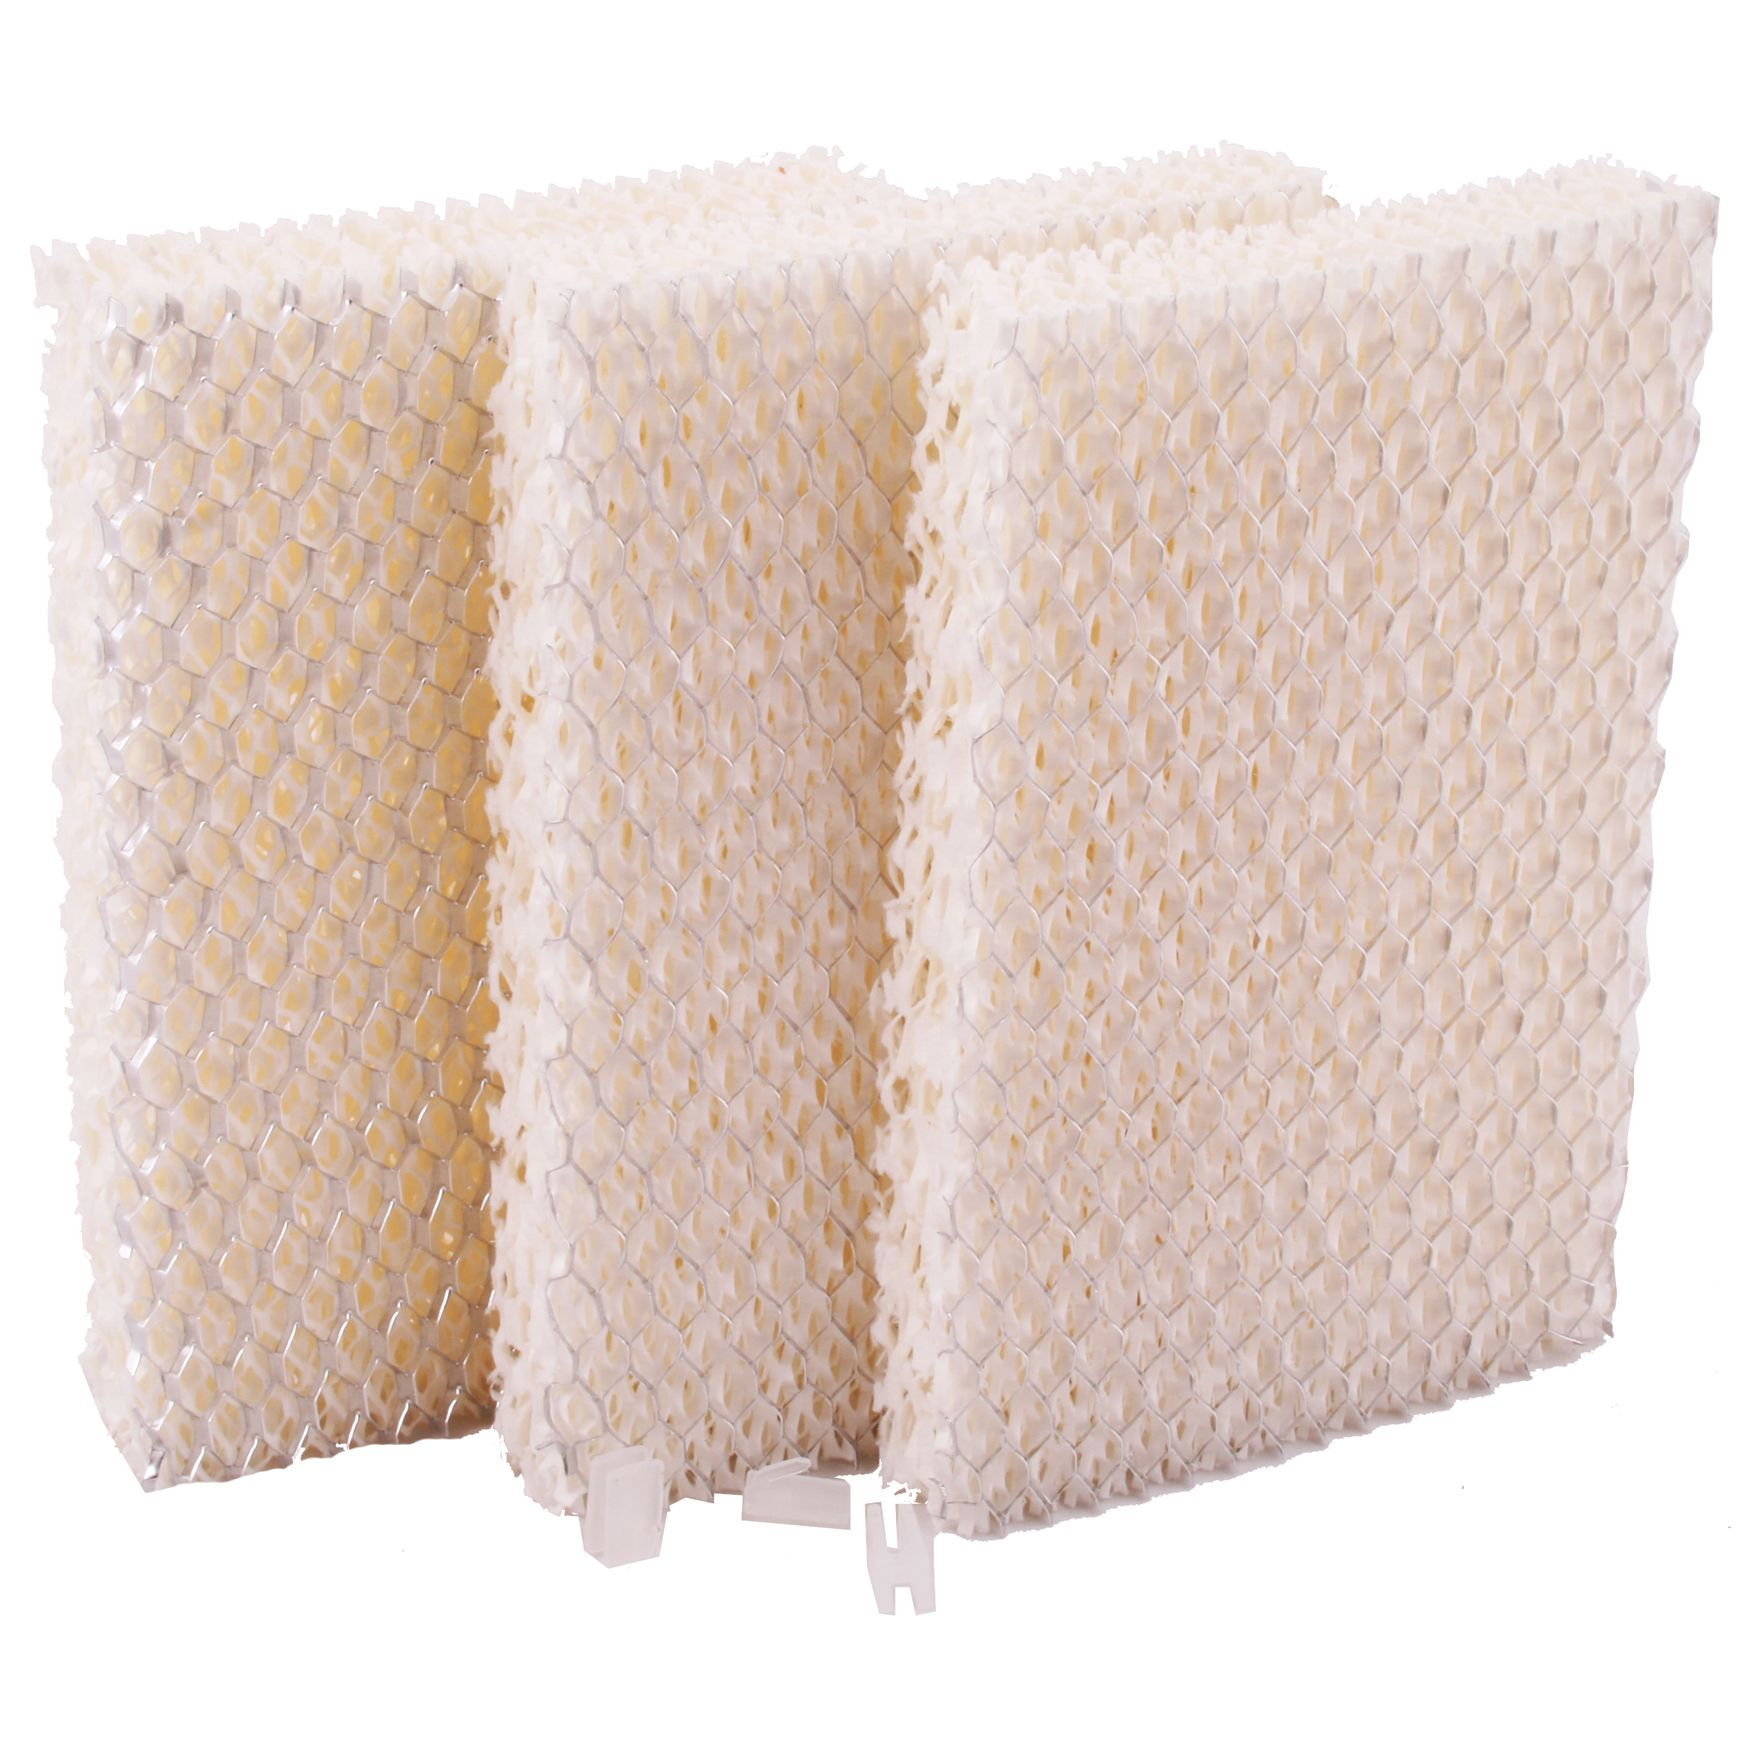 BESTAIR Humidi-WICK Humidifier Wick Filter H100-3-5